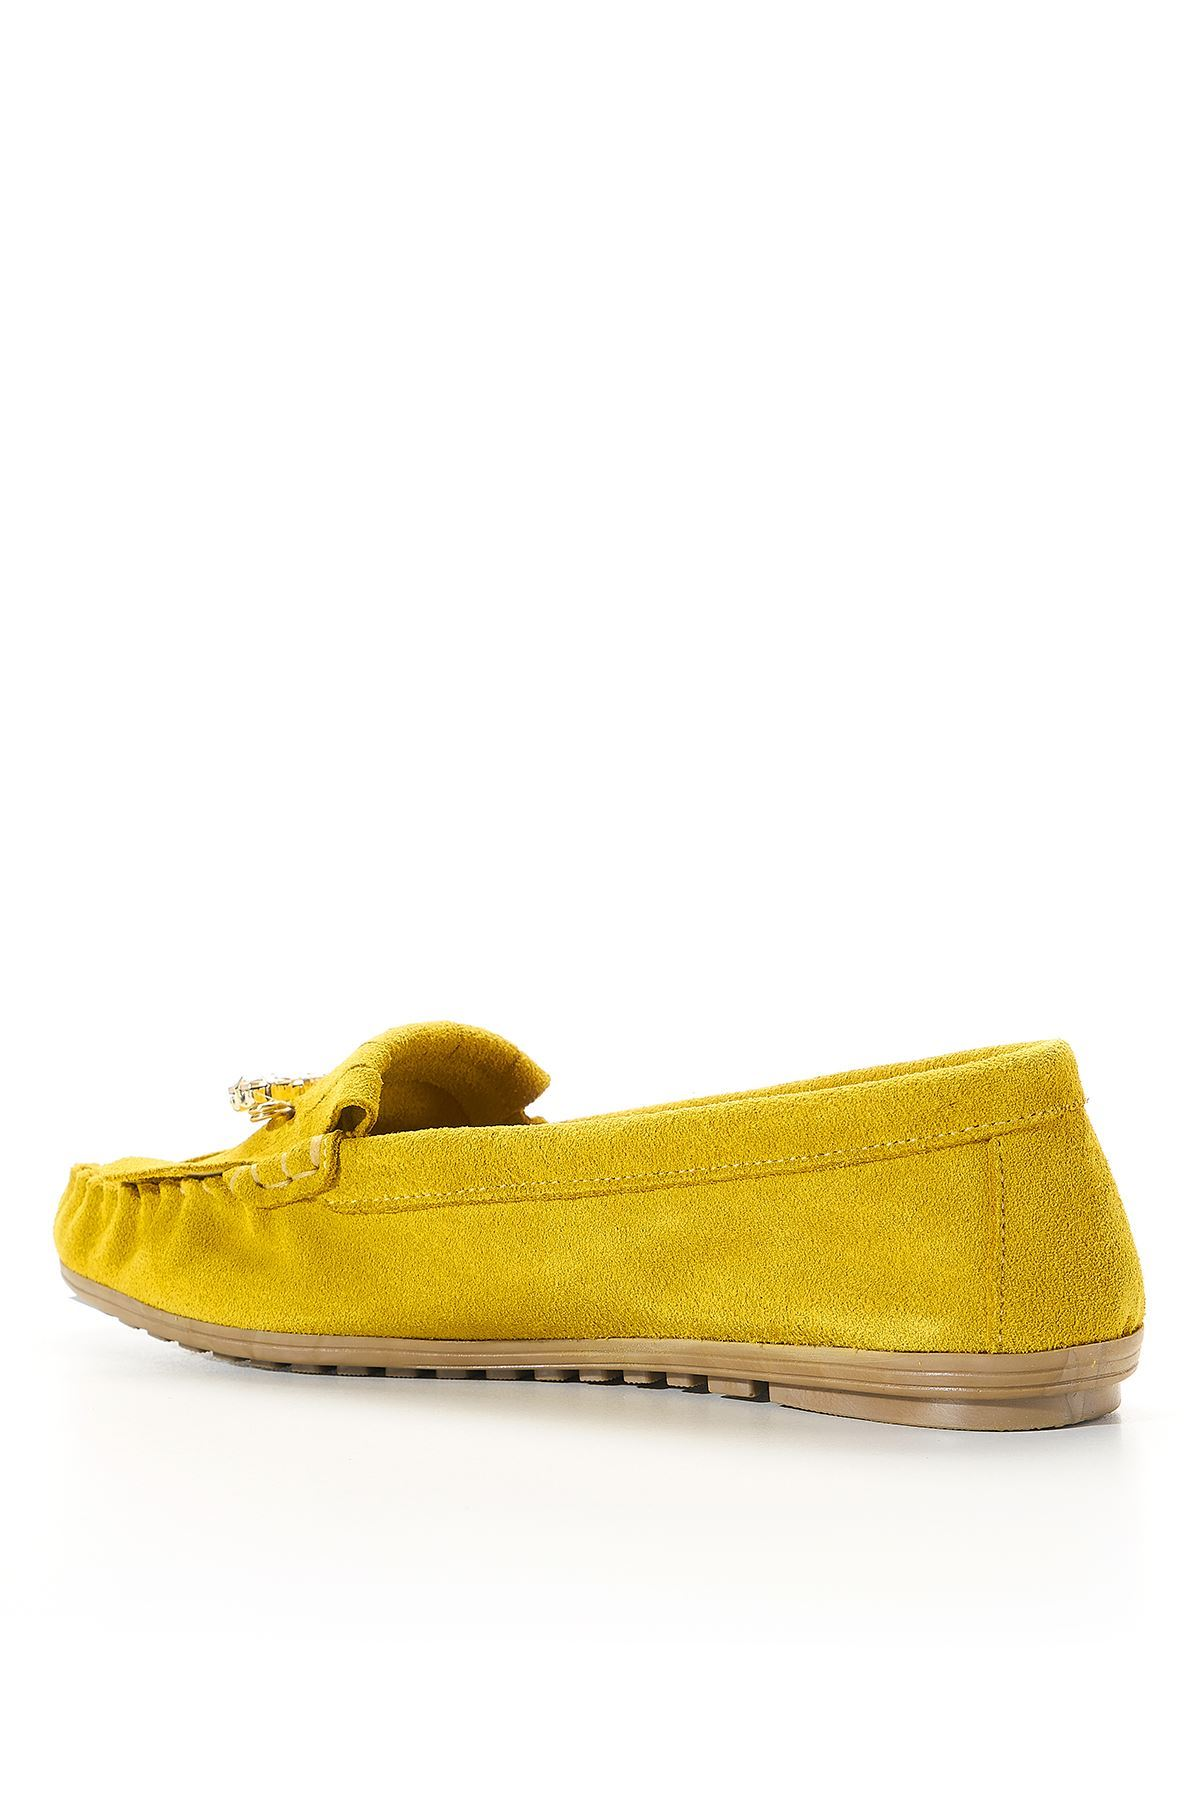 Rugosa Yellow Genuine Leather Women Flat Shoes